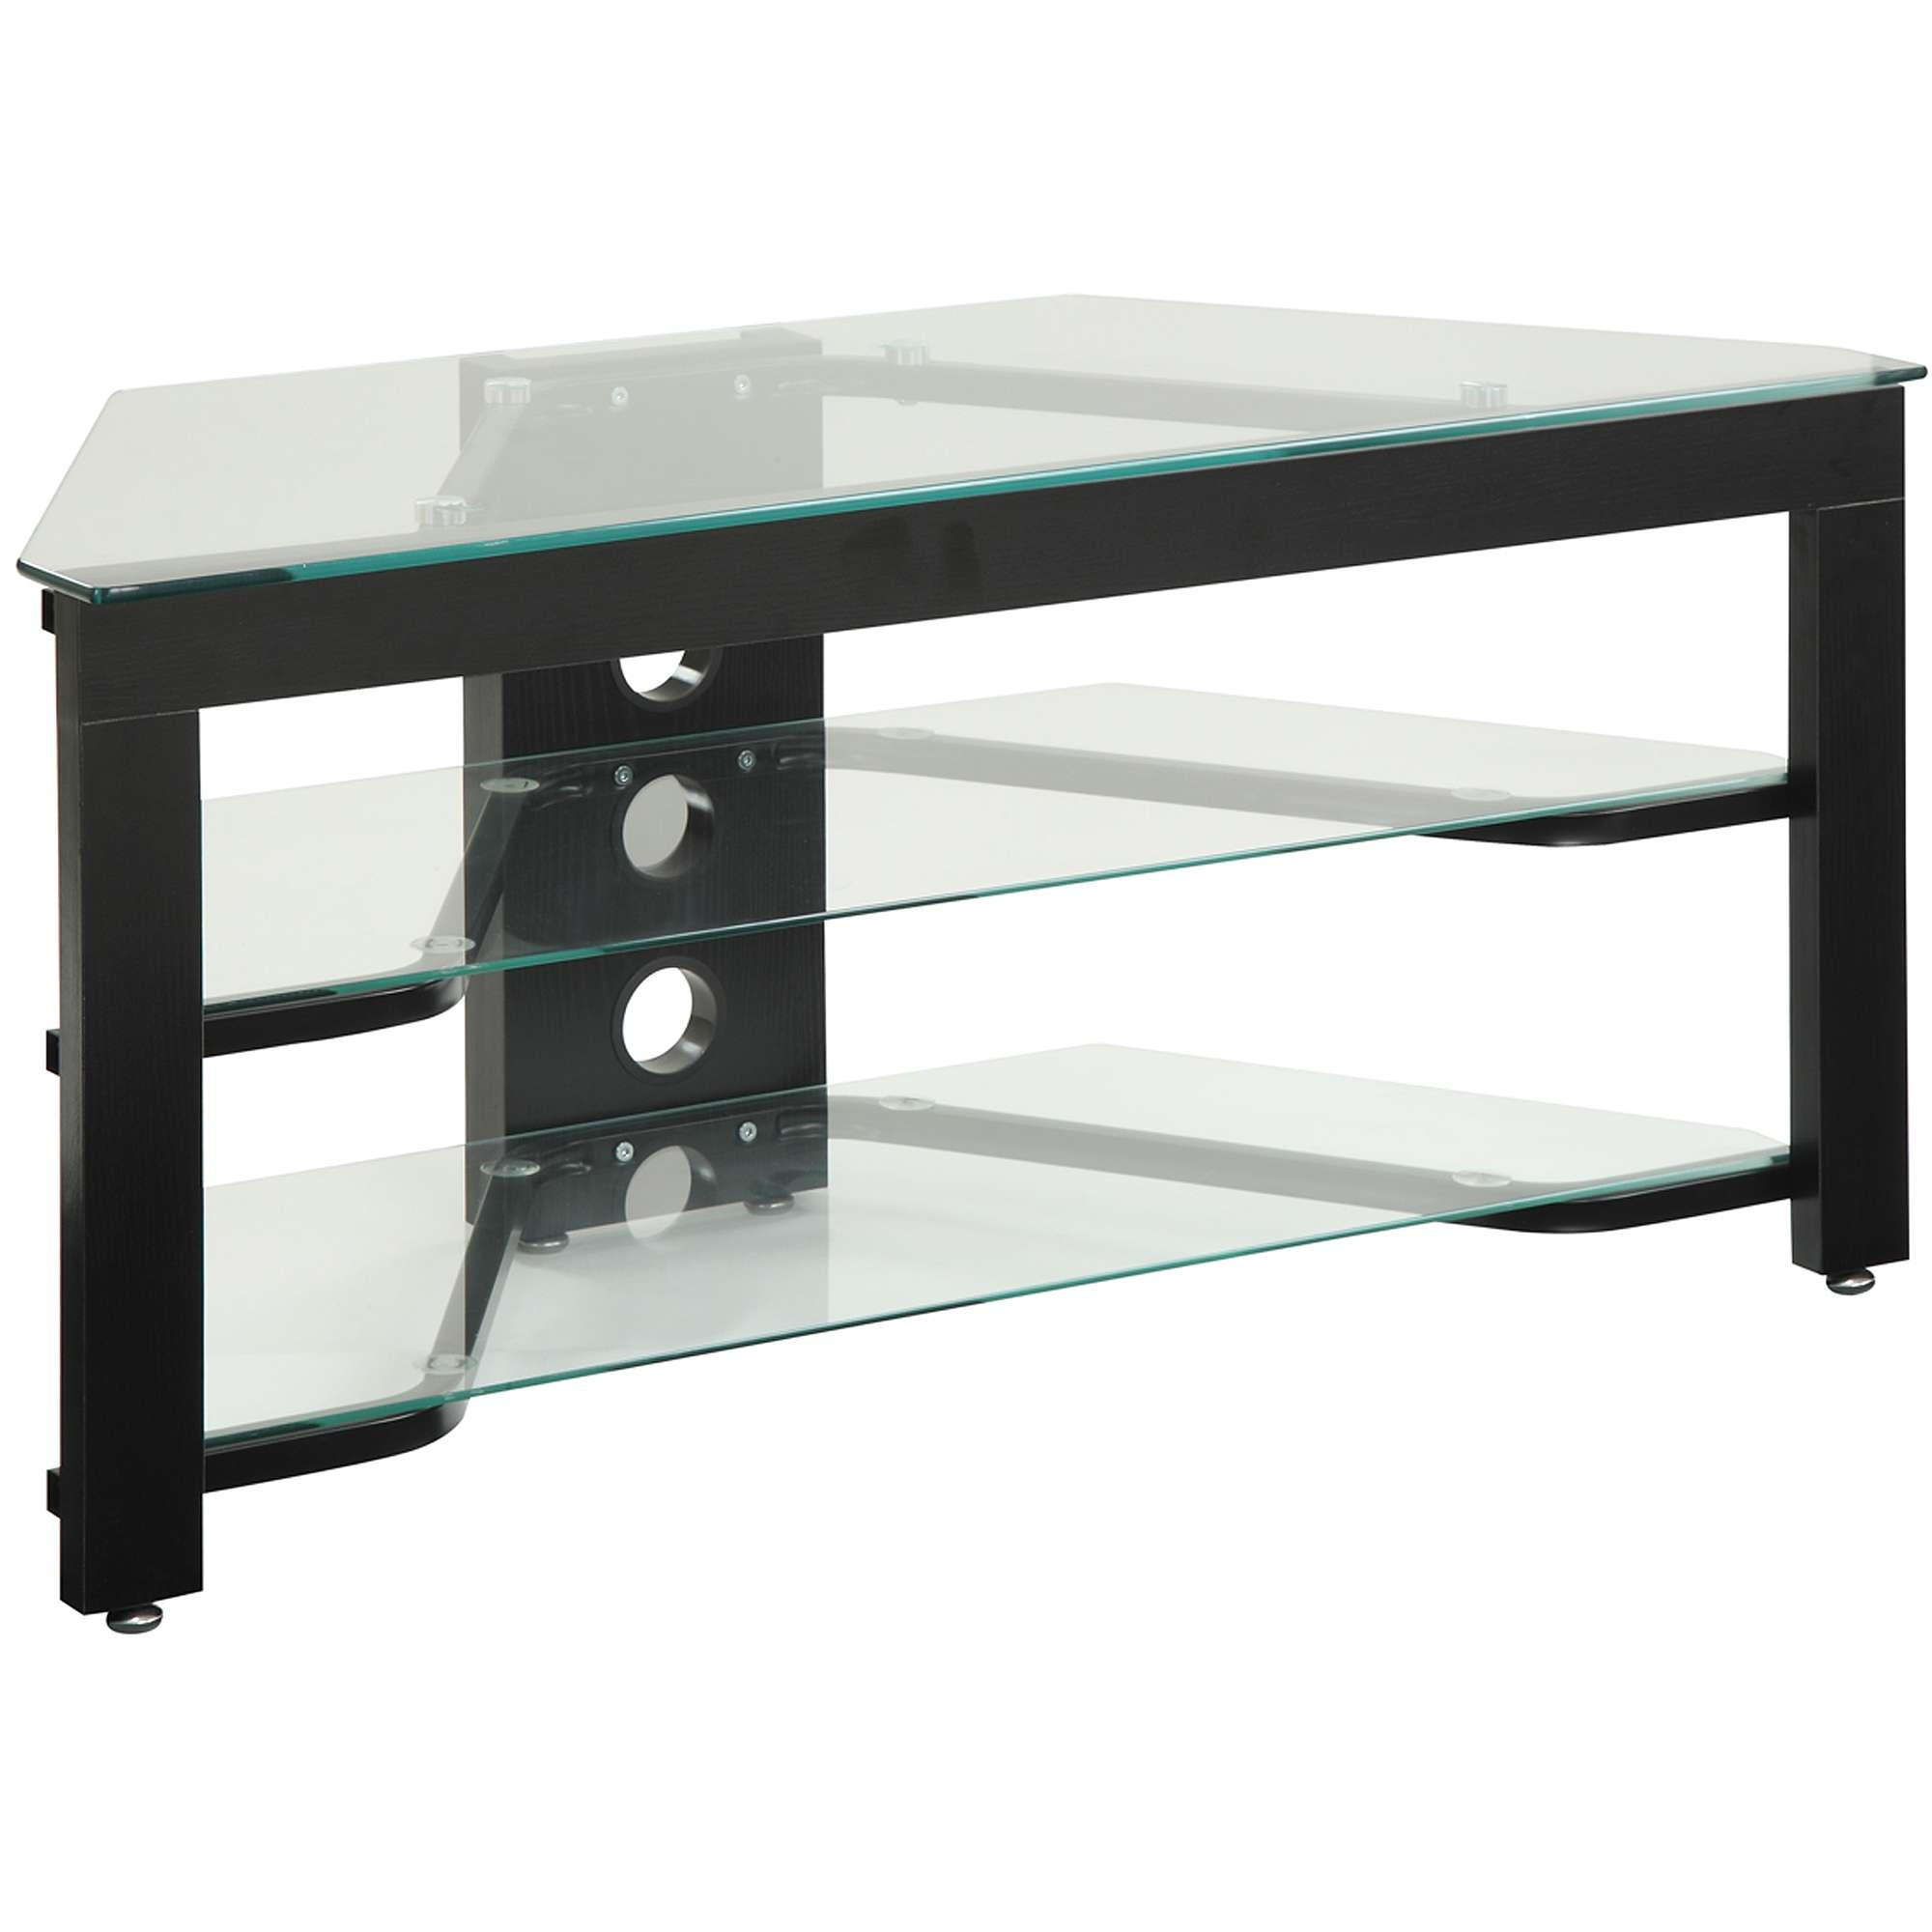 Convenience Concepts Designs2Go Wood And Glass Tv Stand For Tvs Up Pertaining To Black Glass Tv Stands (View 8 of 15)